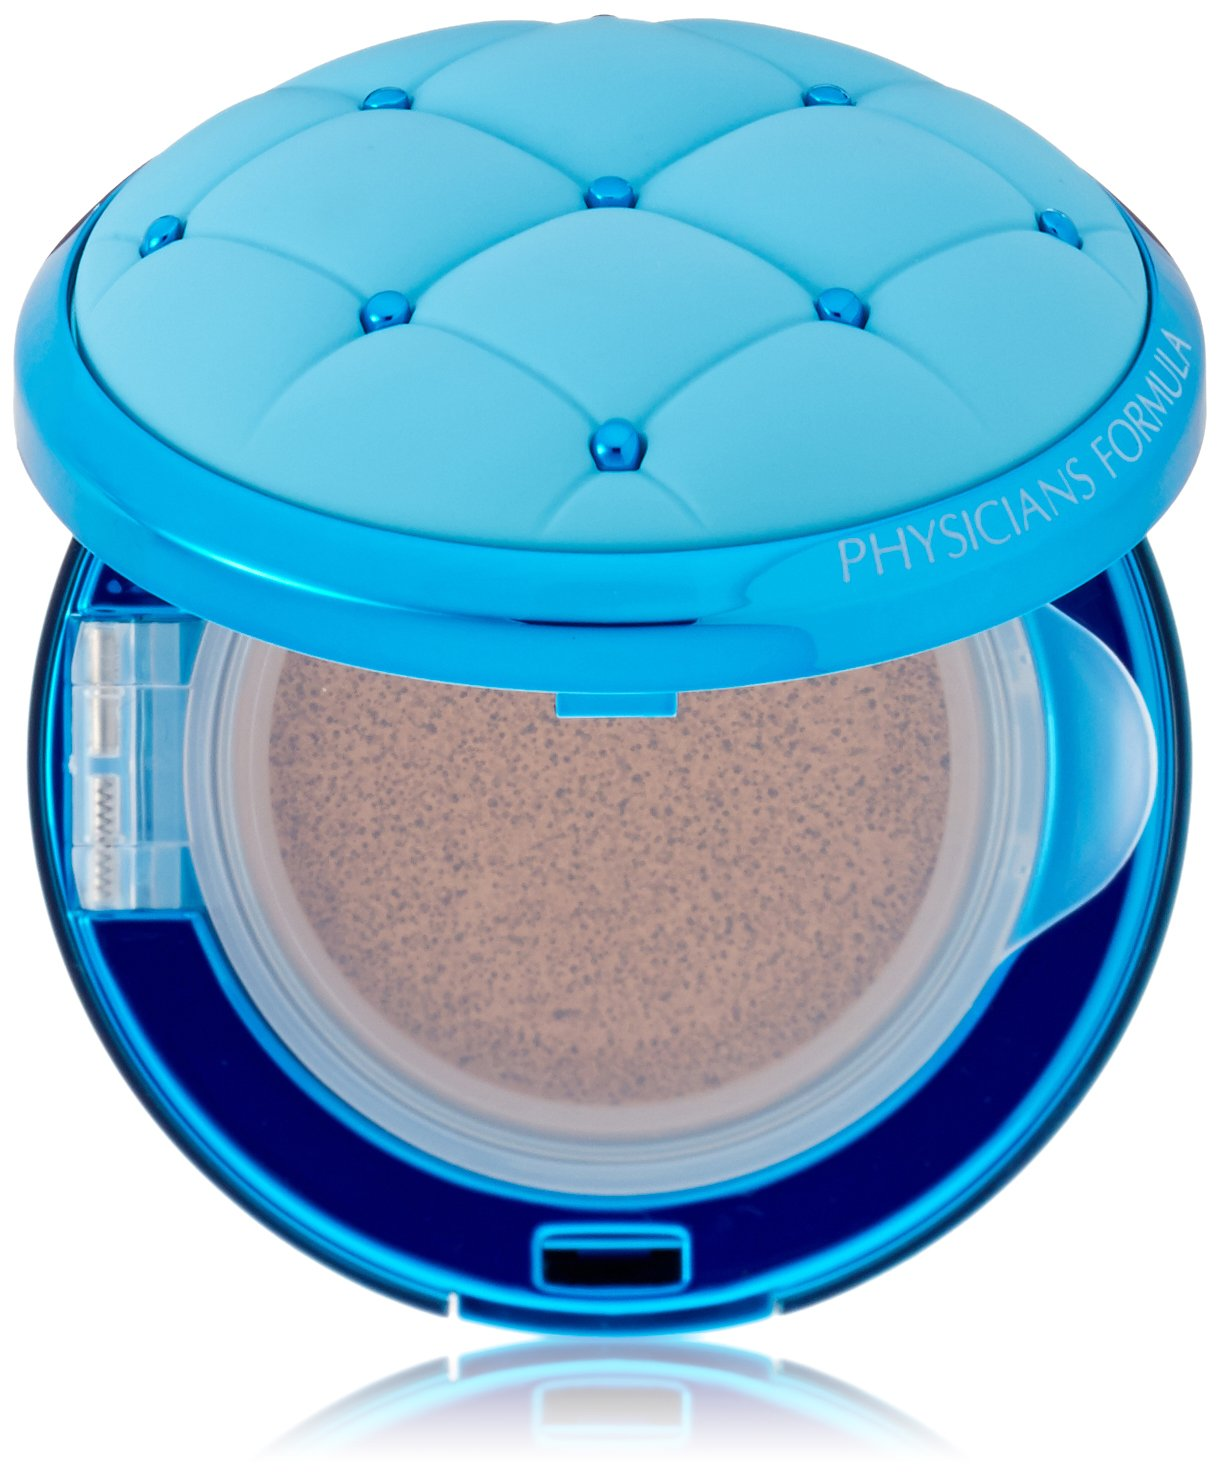 Mineral Wear Cushion Foundation by Physicians Formula